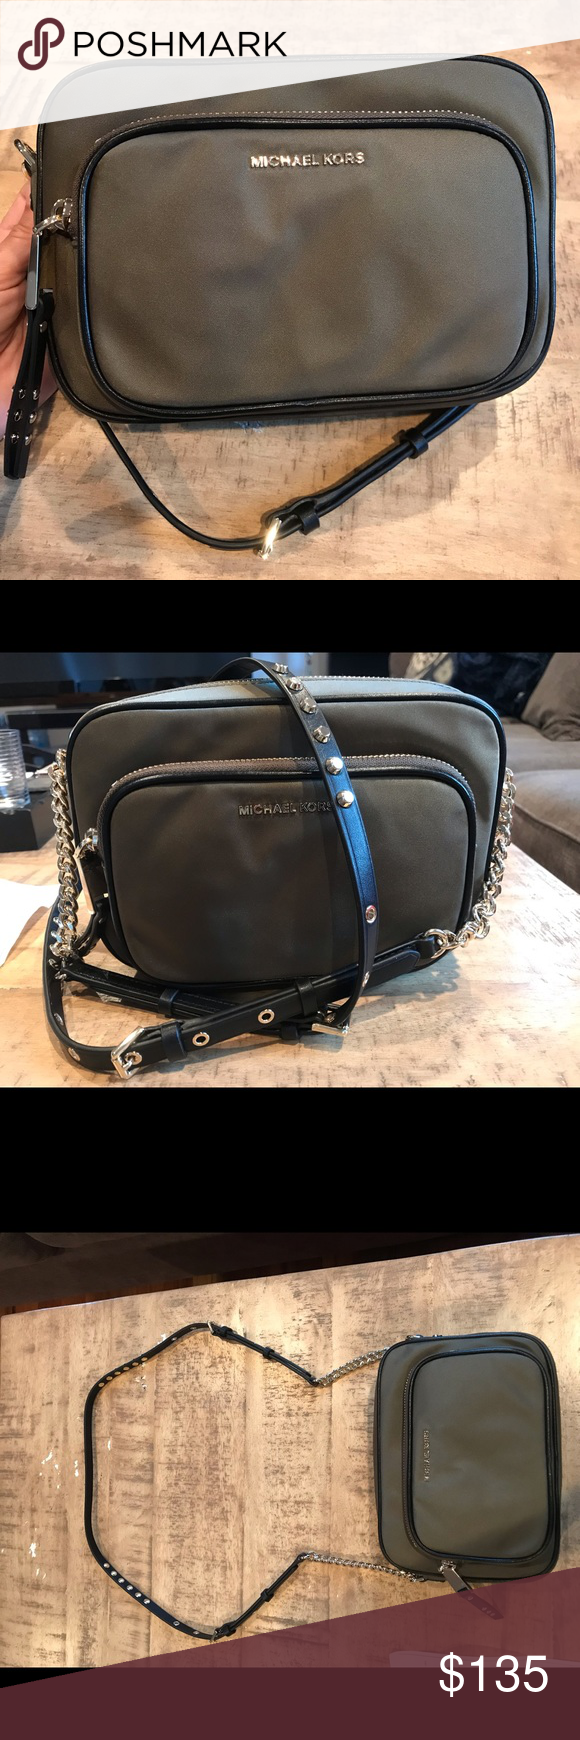 Michael Kors Camera Purse NWT - dark green NWT - Michael Kors - Dark Green color - Nylon material. Has front zipper pouch and card slots in larger zipper.  Gold Studded strap with short amount of gold chain as seen in the pics. bought it from Macys but wasn't my style when I saw it in person. Michael Kors Bags Crossbody Bags #camerapurse